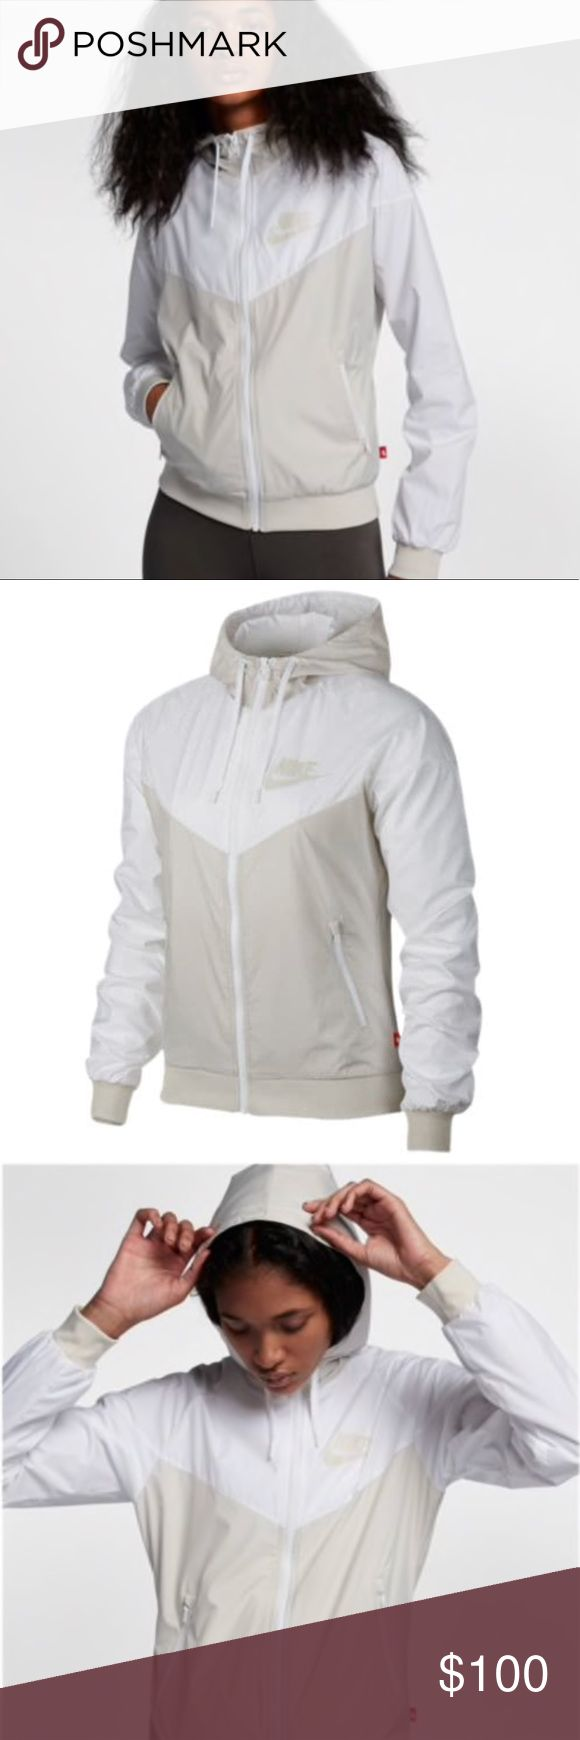 """•Nike Windrunner OG• NWT Nike Windrunner OG zip up hoodie in """"light bone"""". Women's size small. Never worn, tag is detached.    ❌ NO TRADES 📬 Same day / Next day shipping 🚫 Smoke & Pet free home 🎁 Bundle discount 10% off 2+ items Nike Jackets & Coats"""